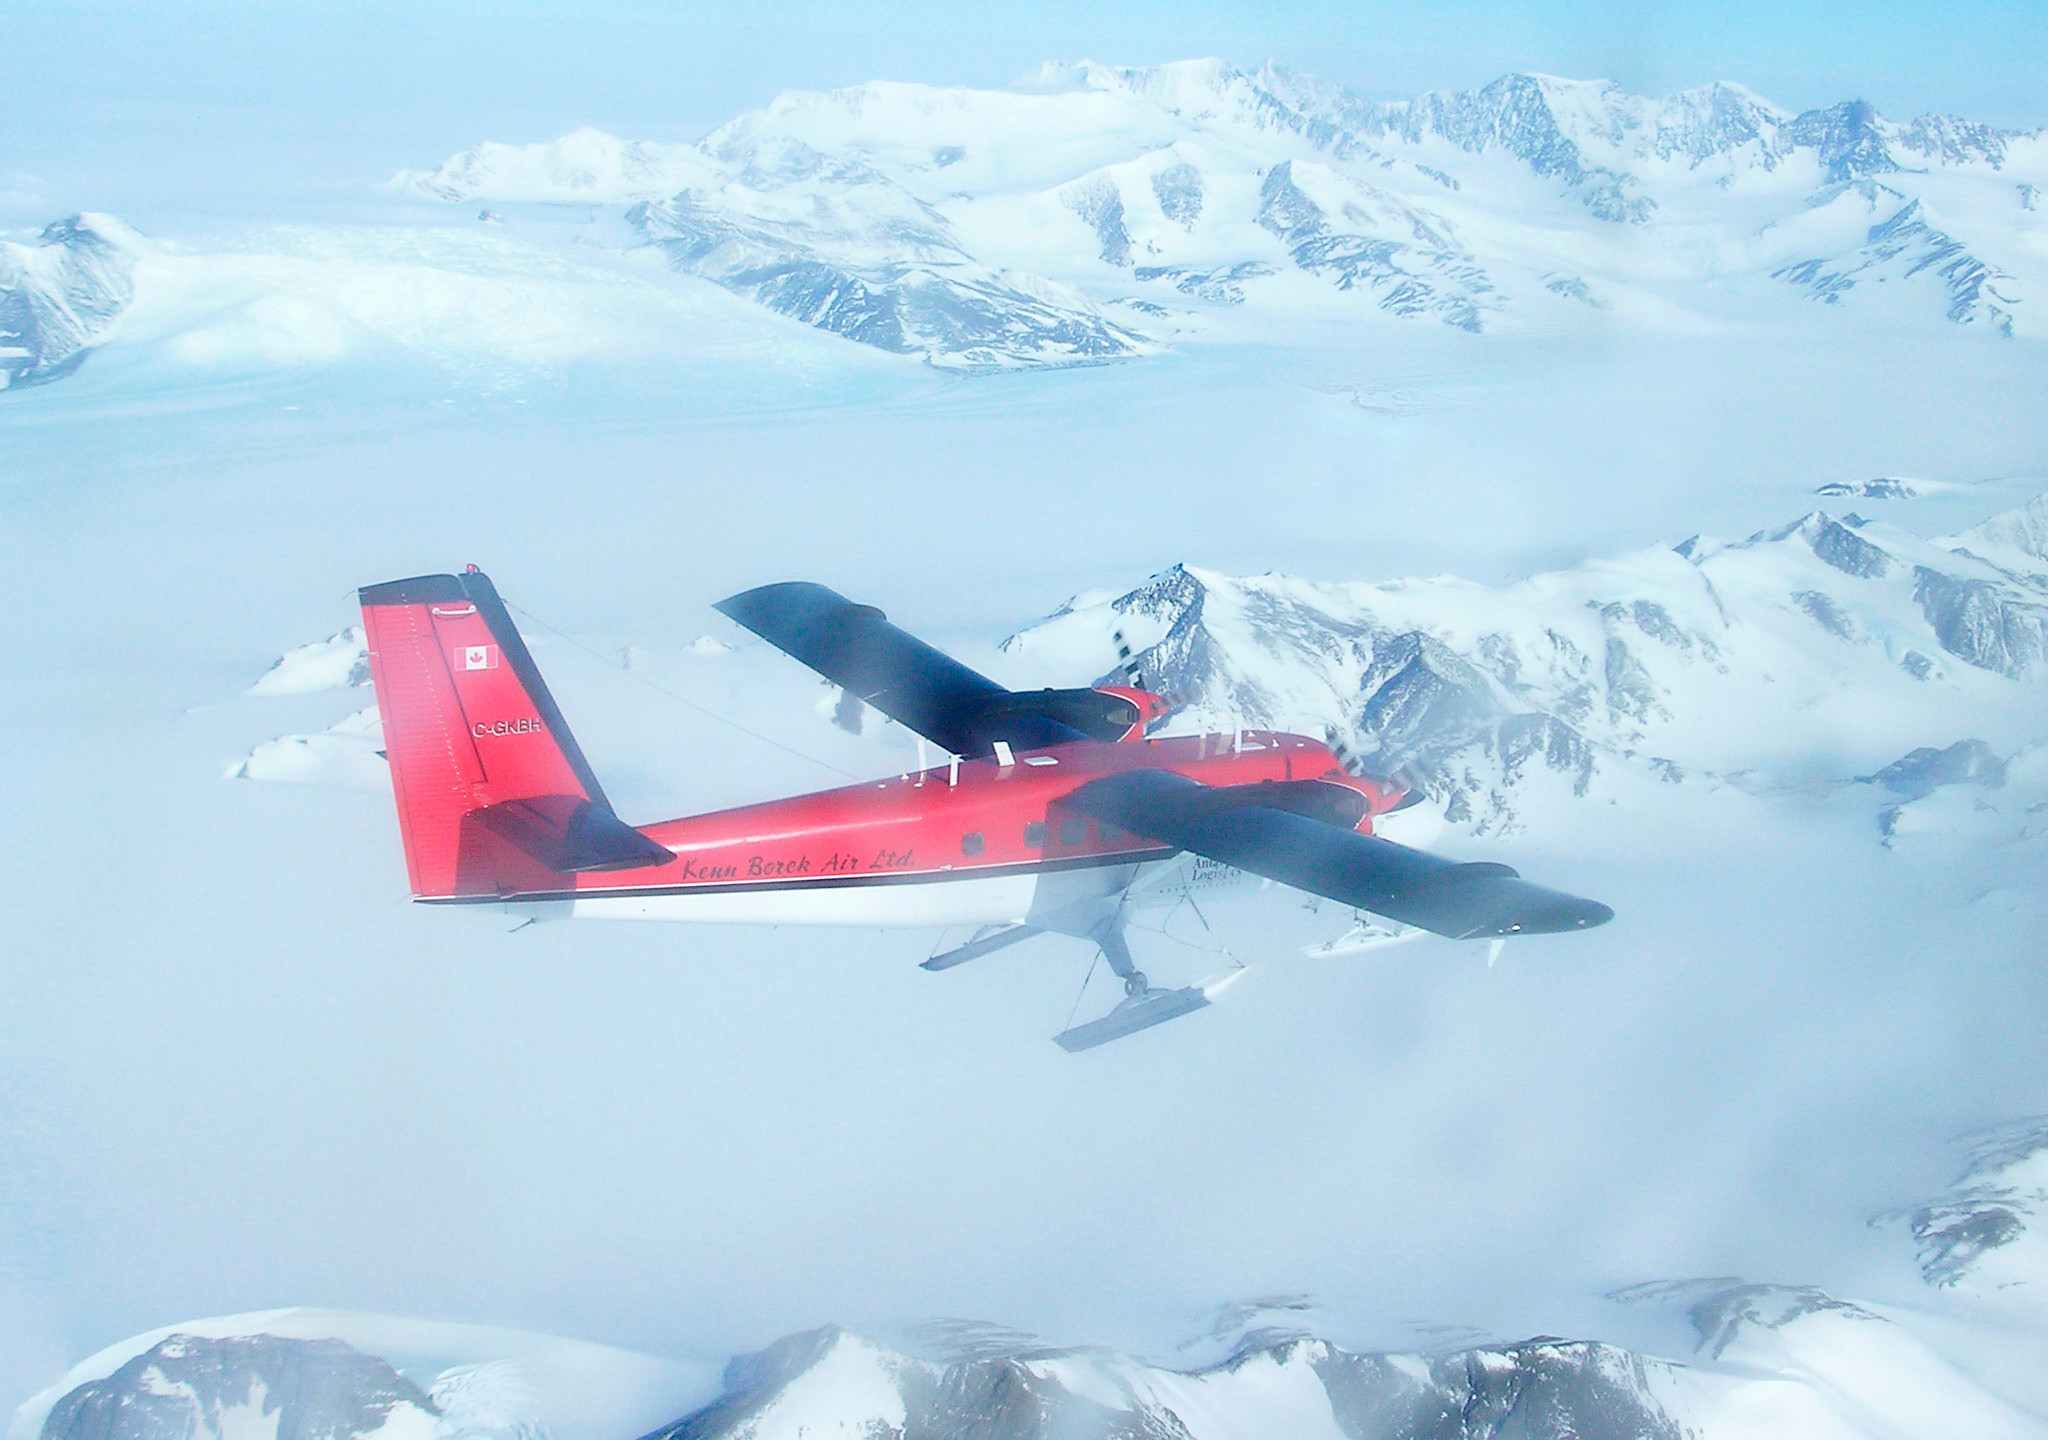 Twin otter to basecamp